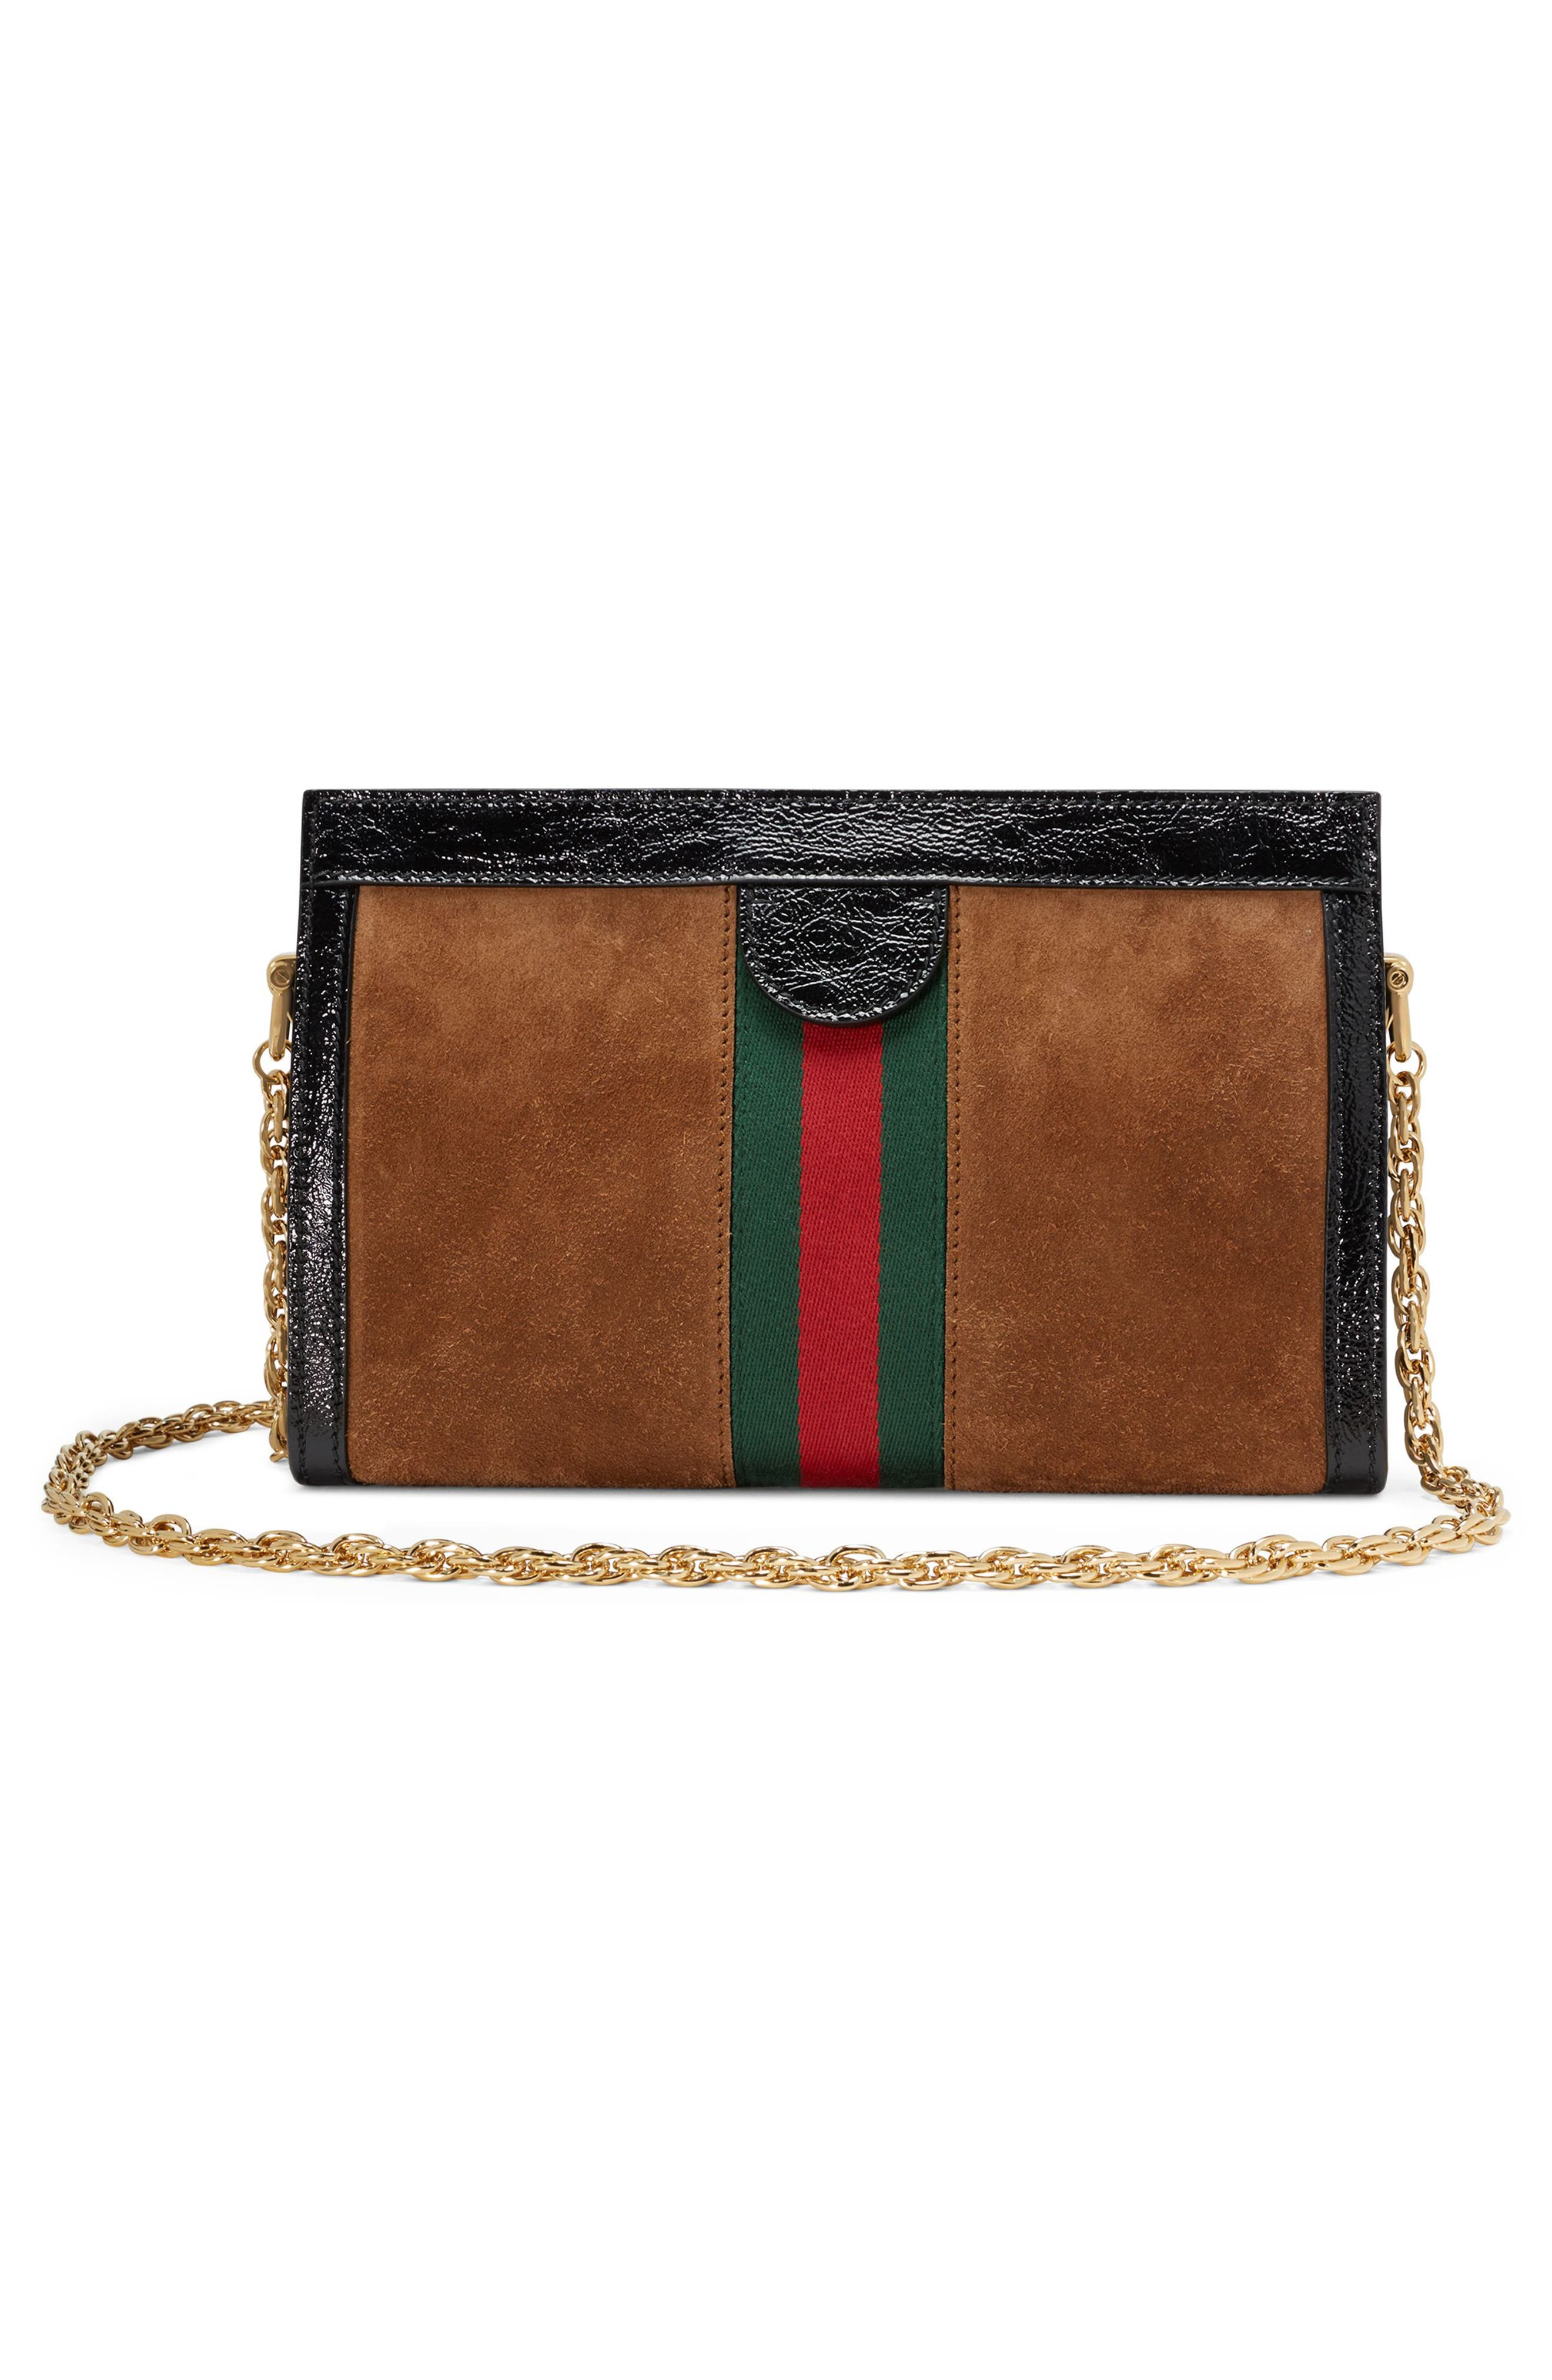 Small Linea Chain Shoulder Bag,                             Alternate thumbnail 2, color,                             NOCCIOLA/ NERO/ VERT RED VERT